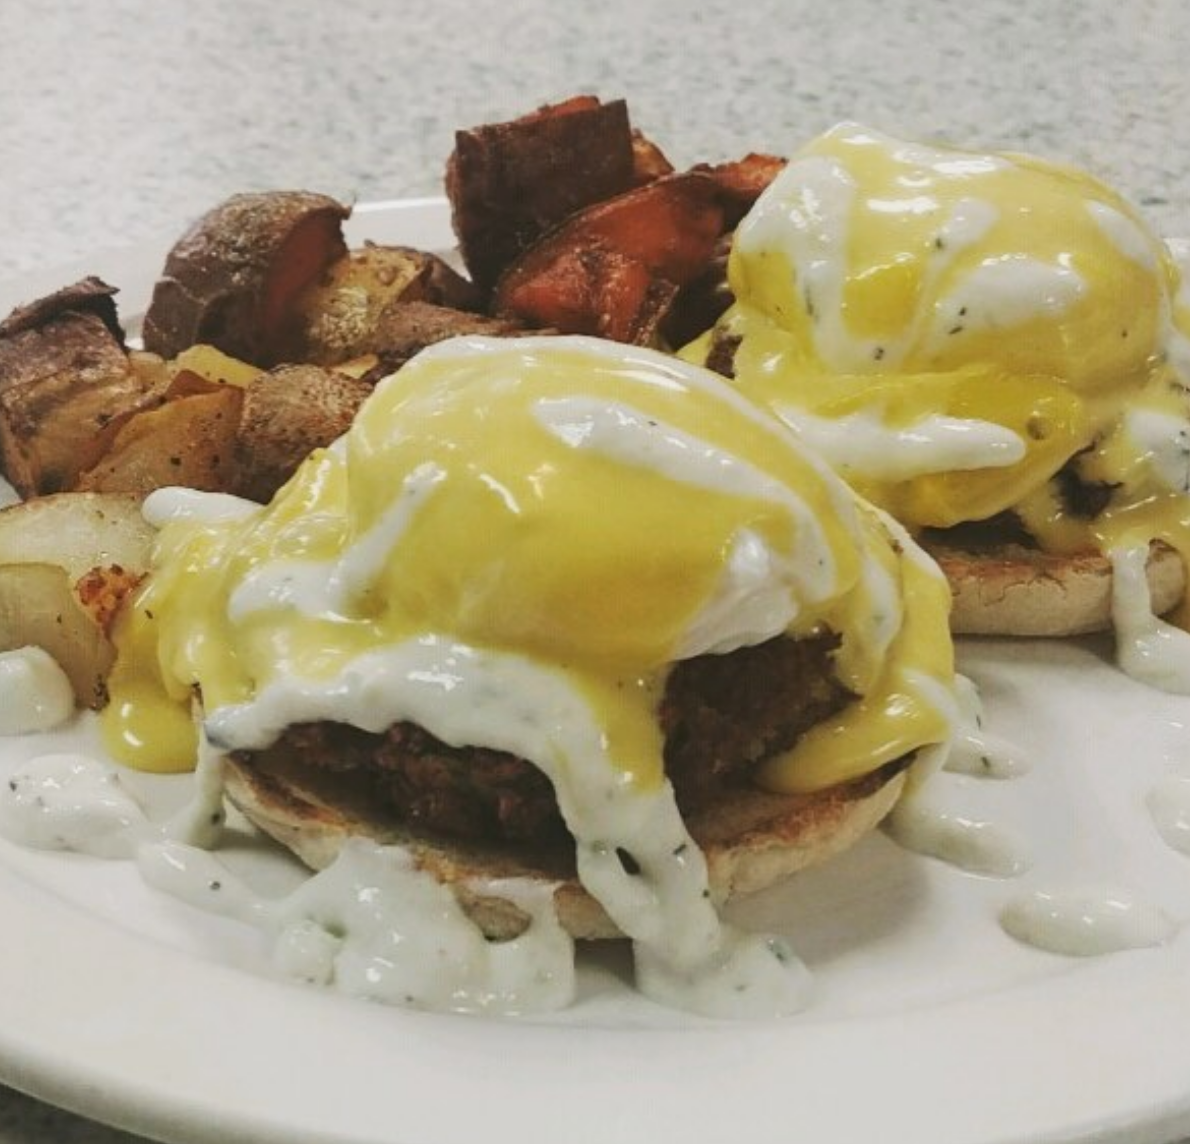 Falafel Benedict- Two patties, poached eggs, hollandaise, and tzatziki drizzle!